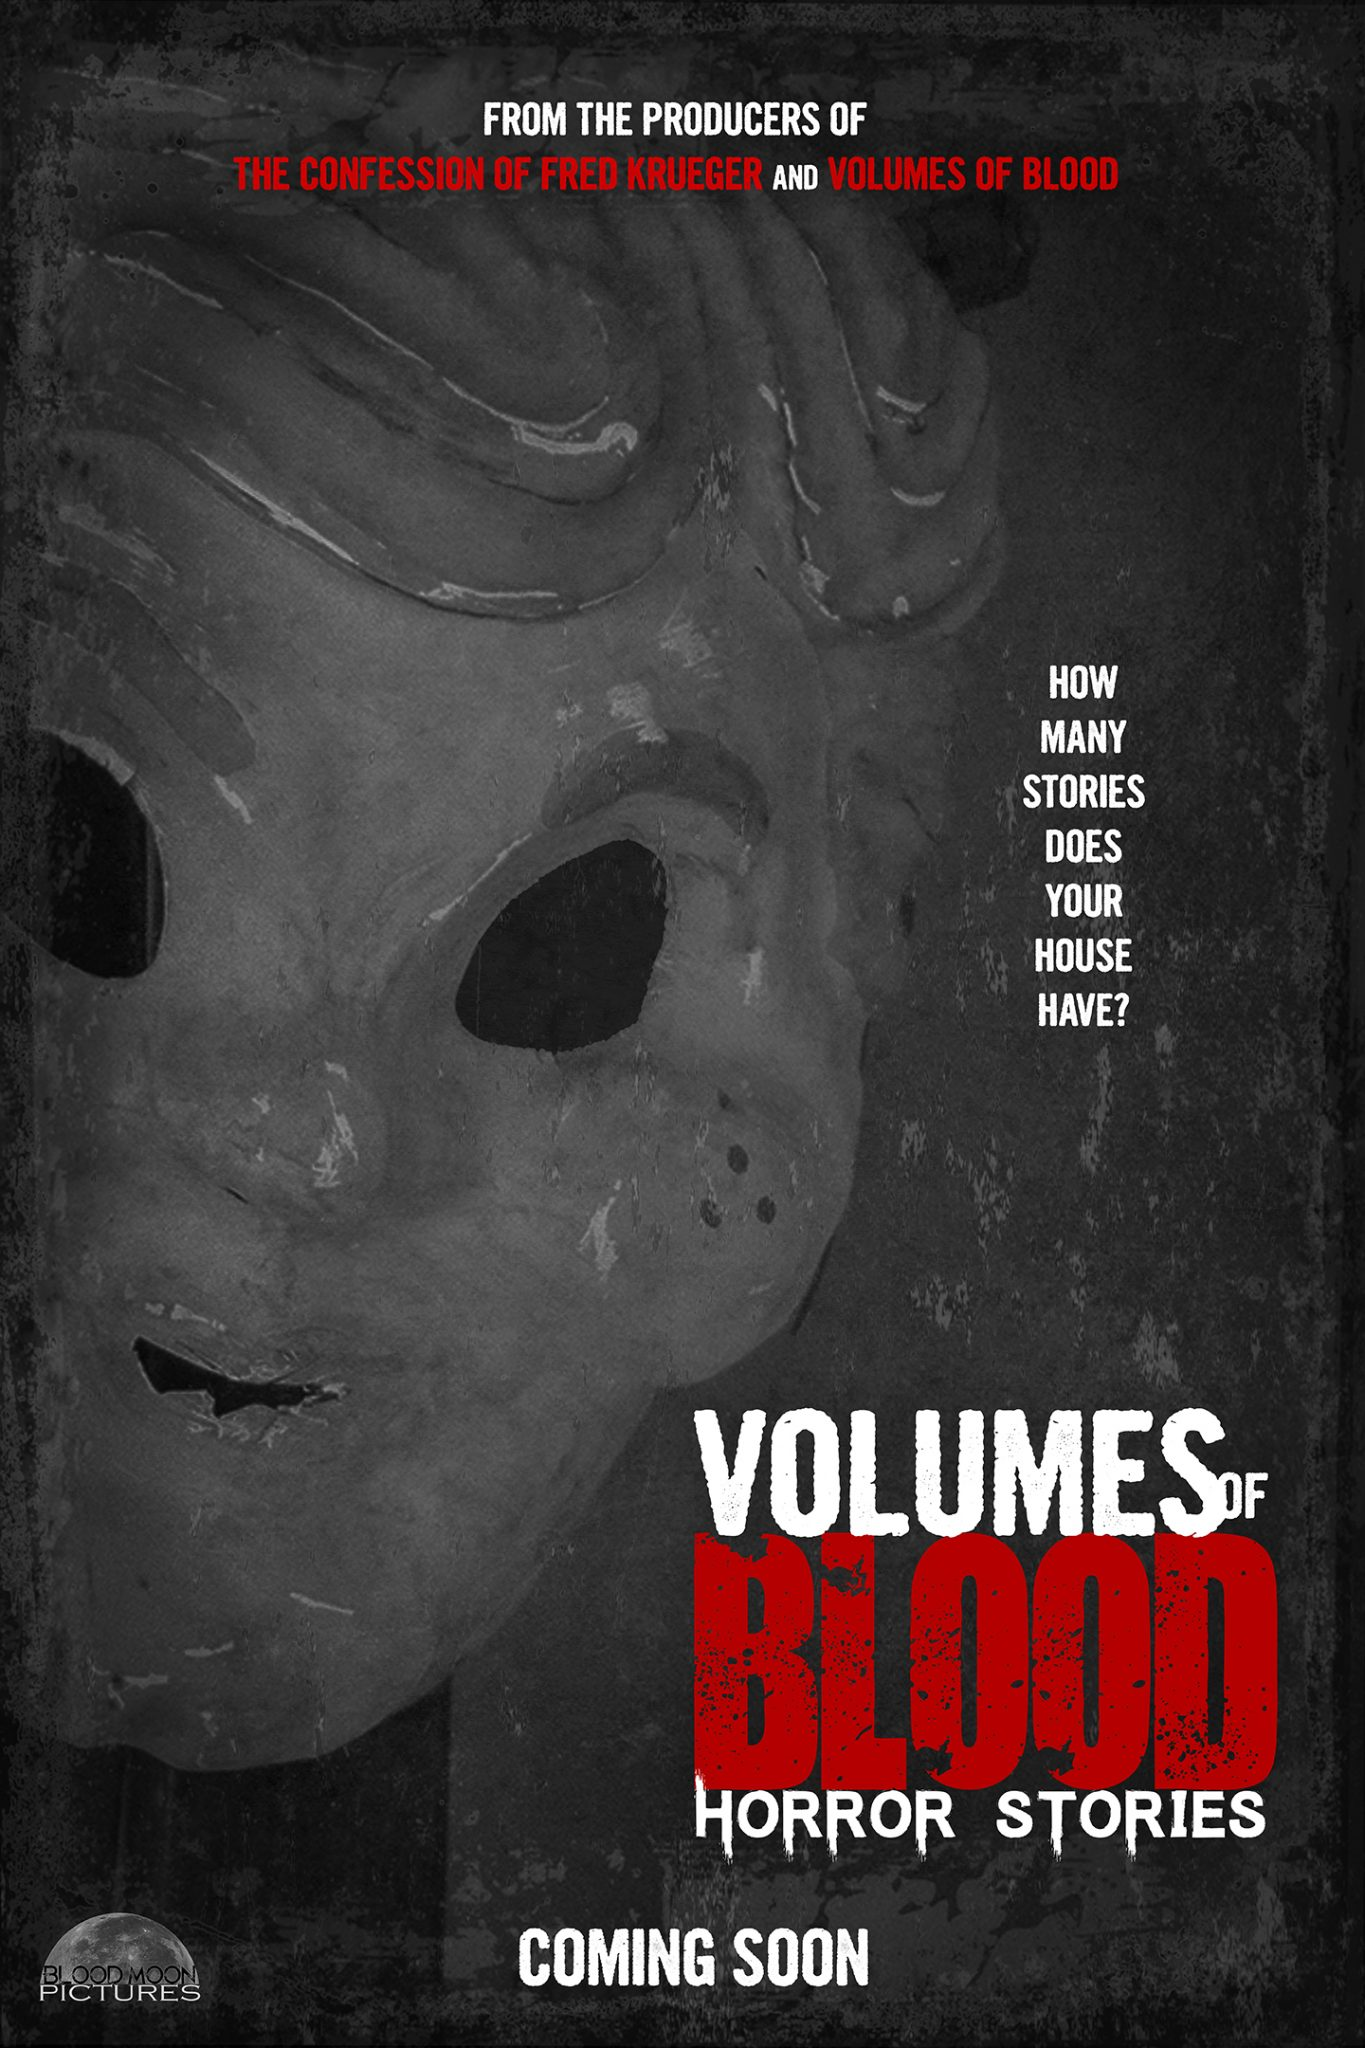 VOBHS Teaser Poster 6 Small - Volumes of Blood: Horror Stories Unleashes Three New Chilling Character Teaser Posters for the Anthology Sequel